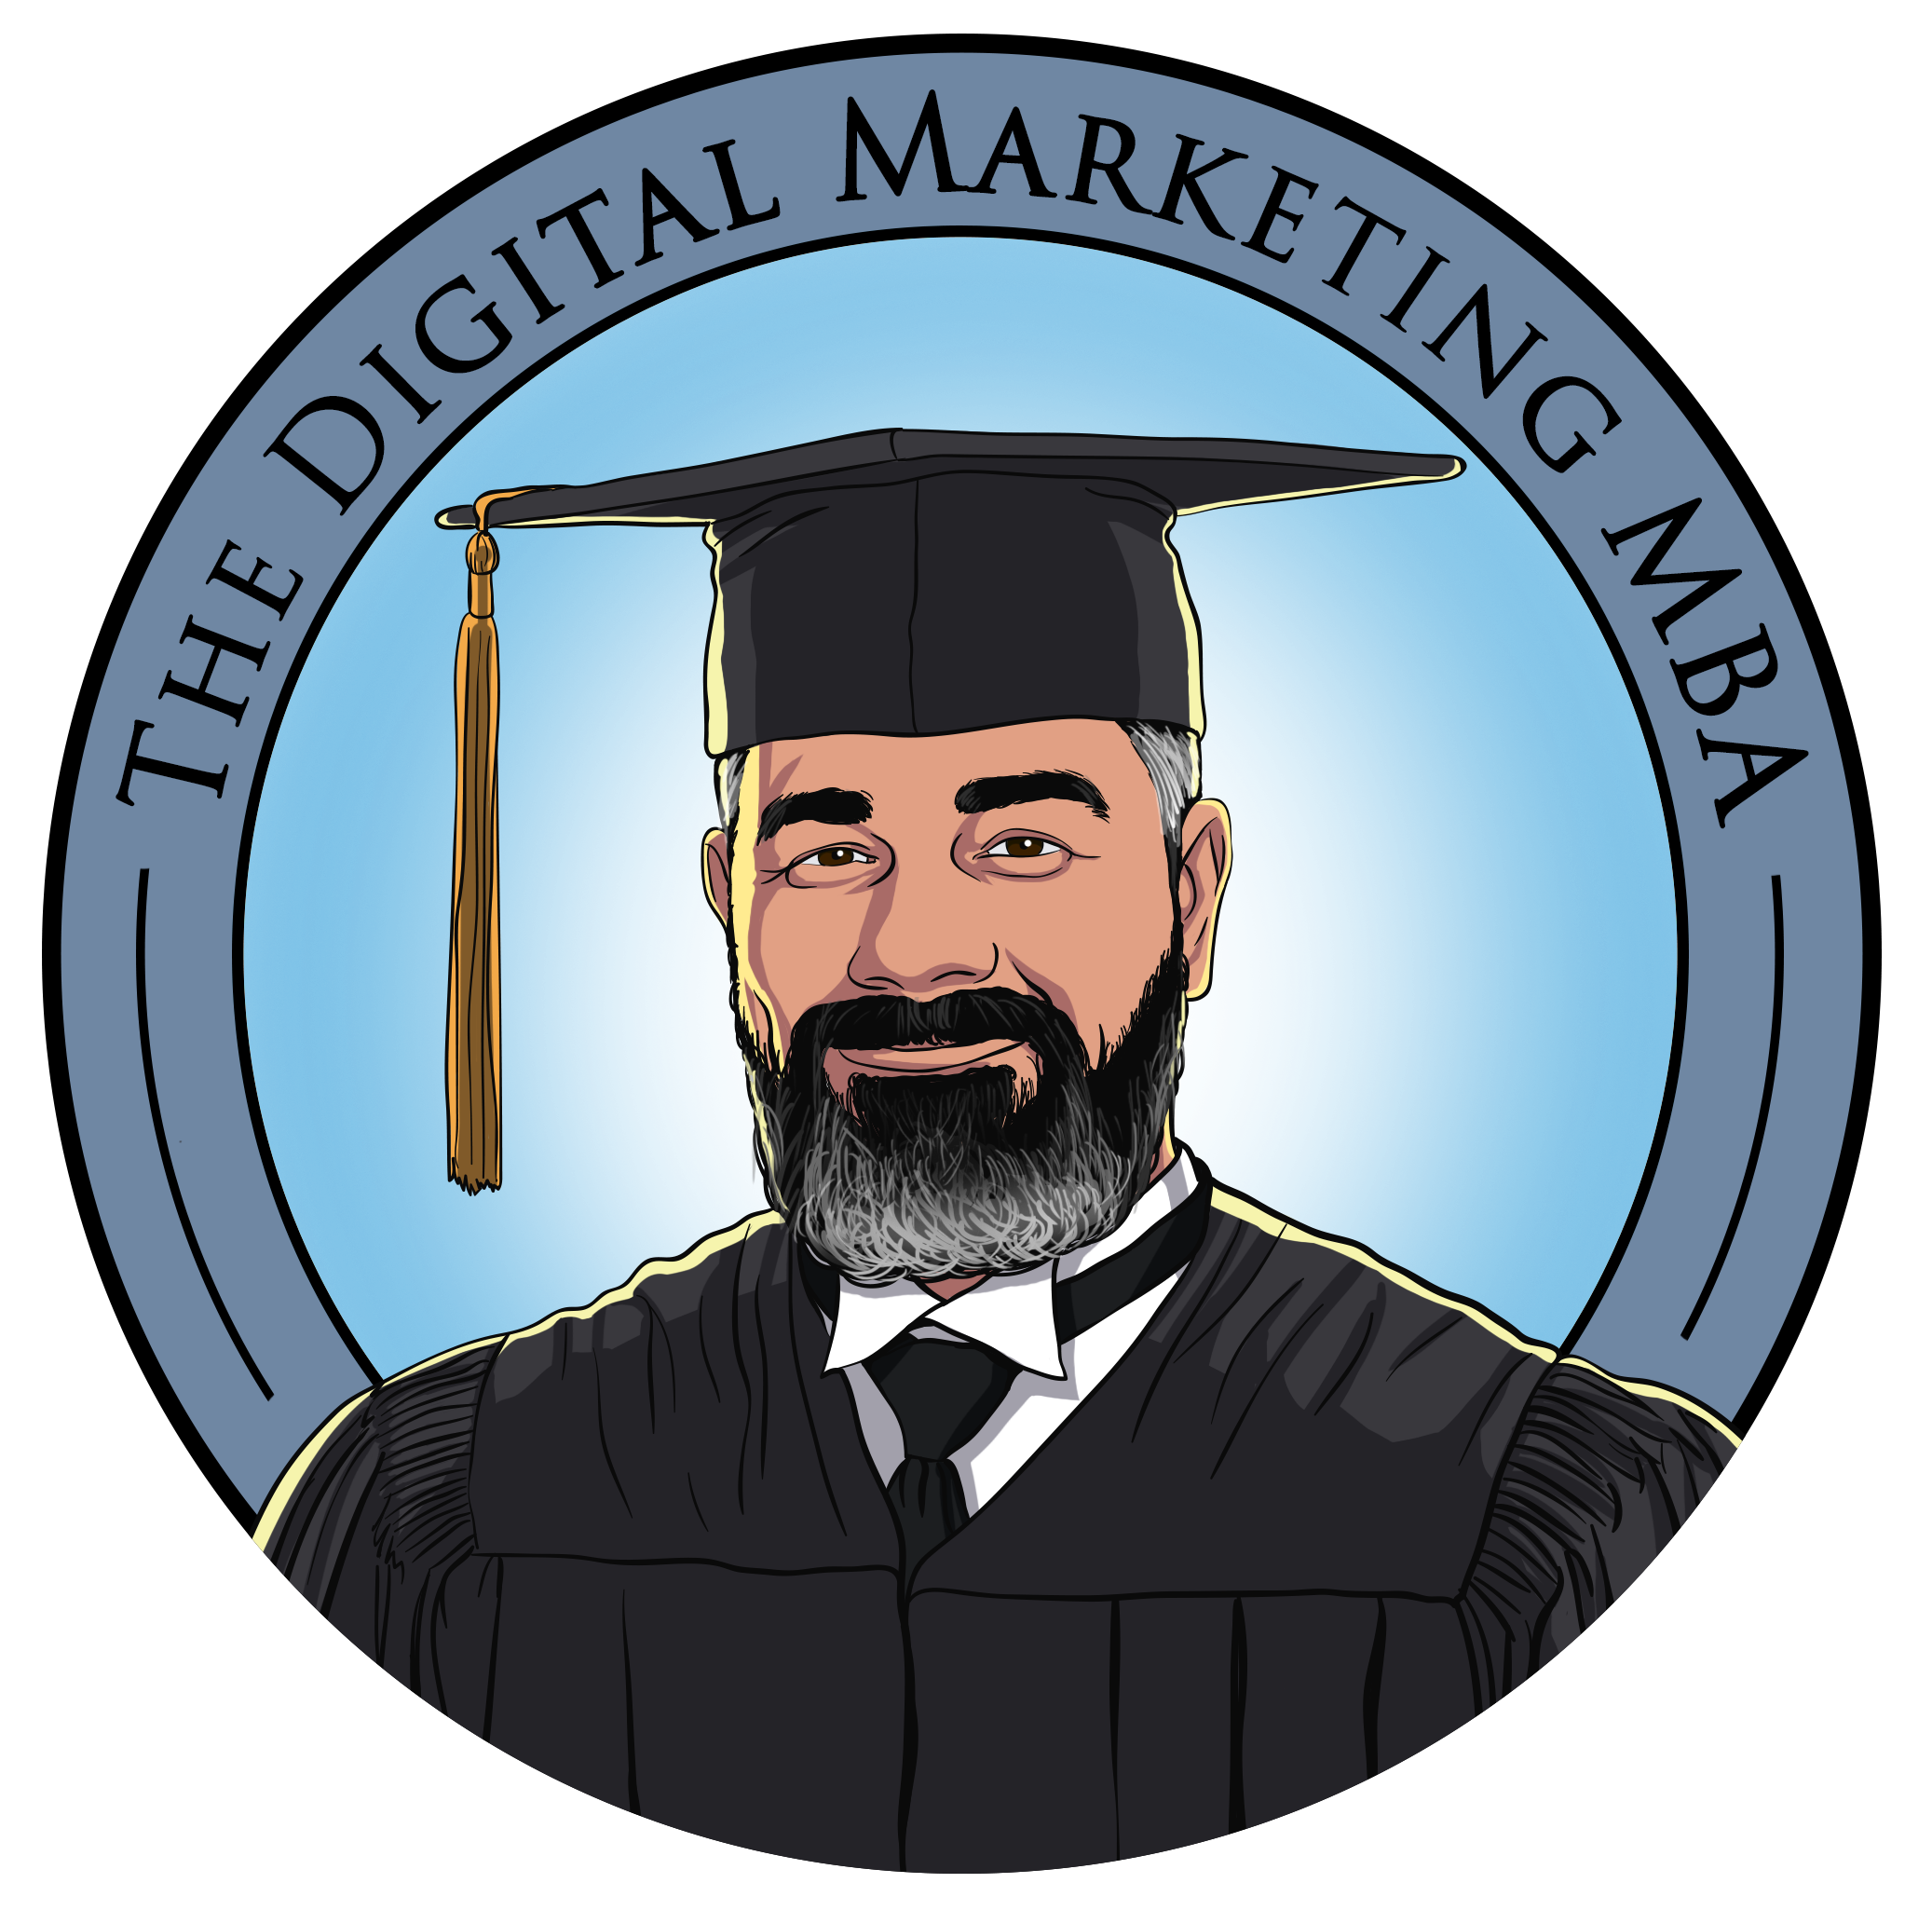 Scott Blair, The Digital Marketing MBA